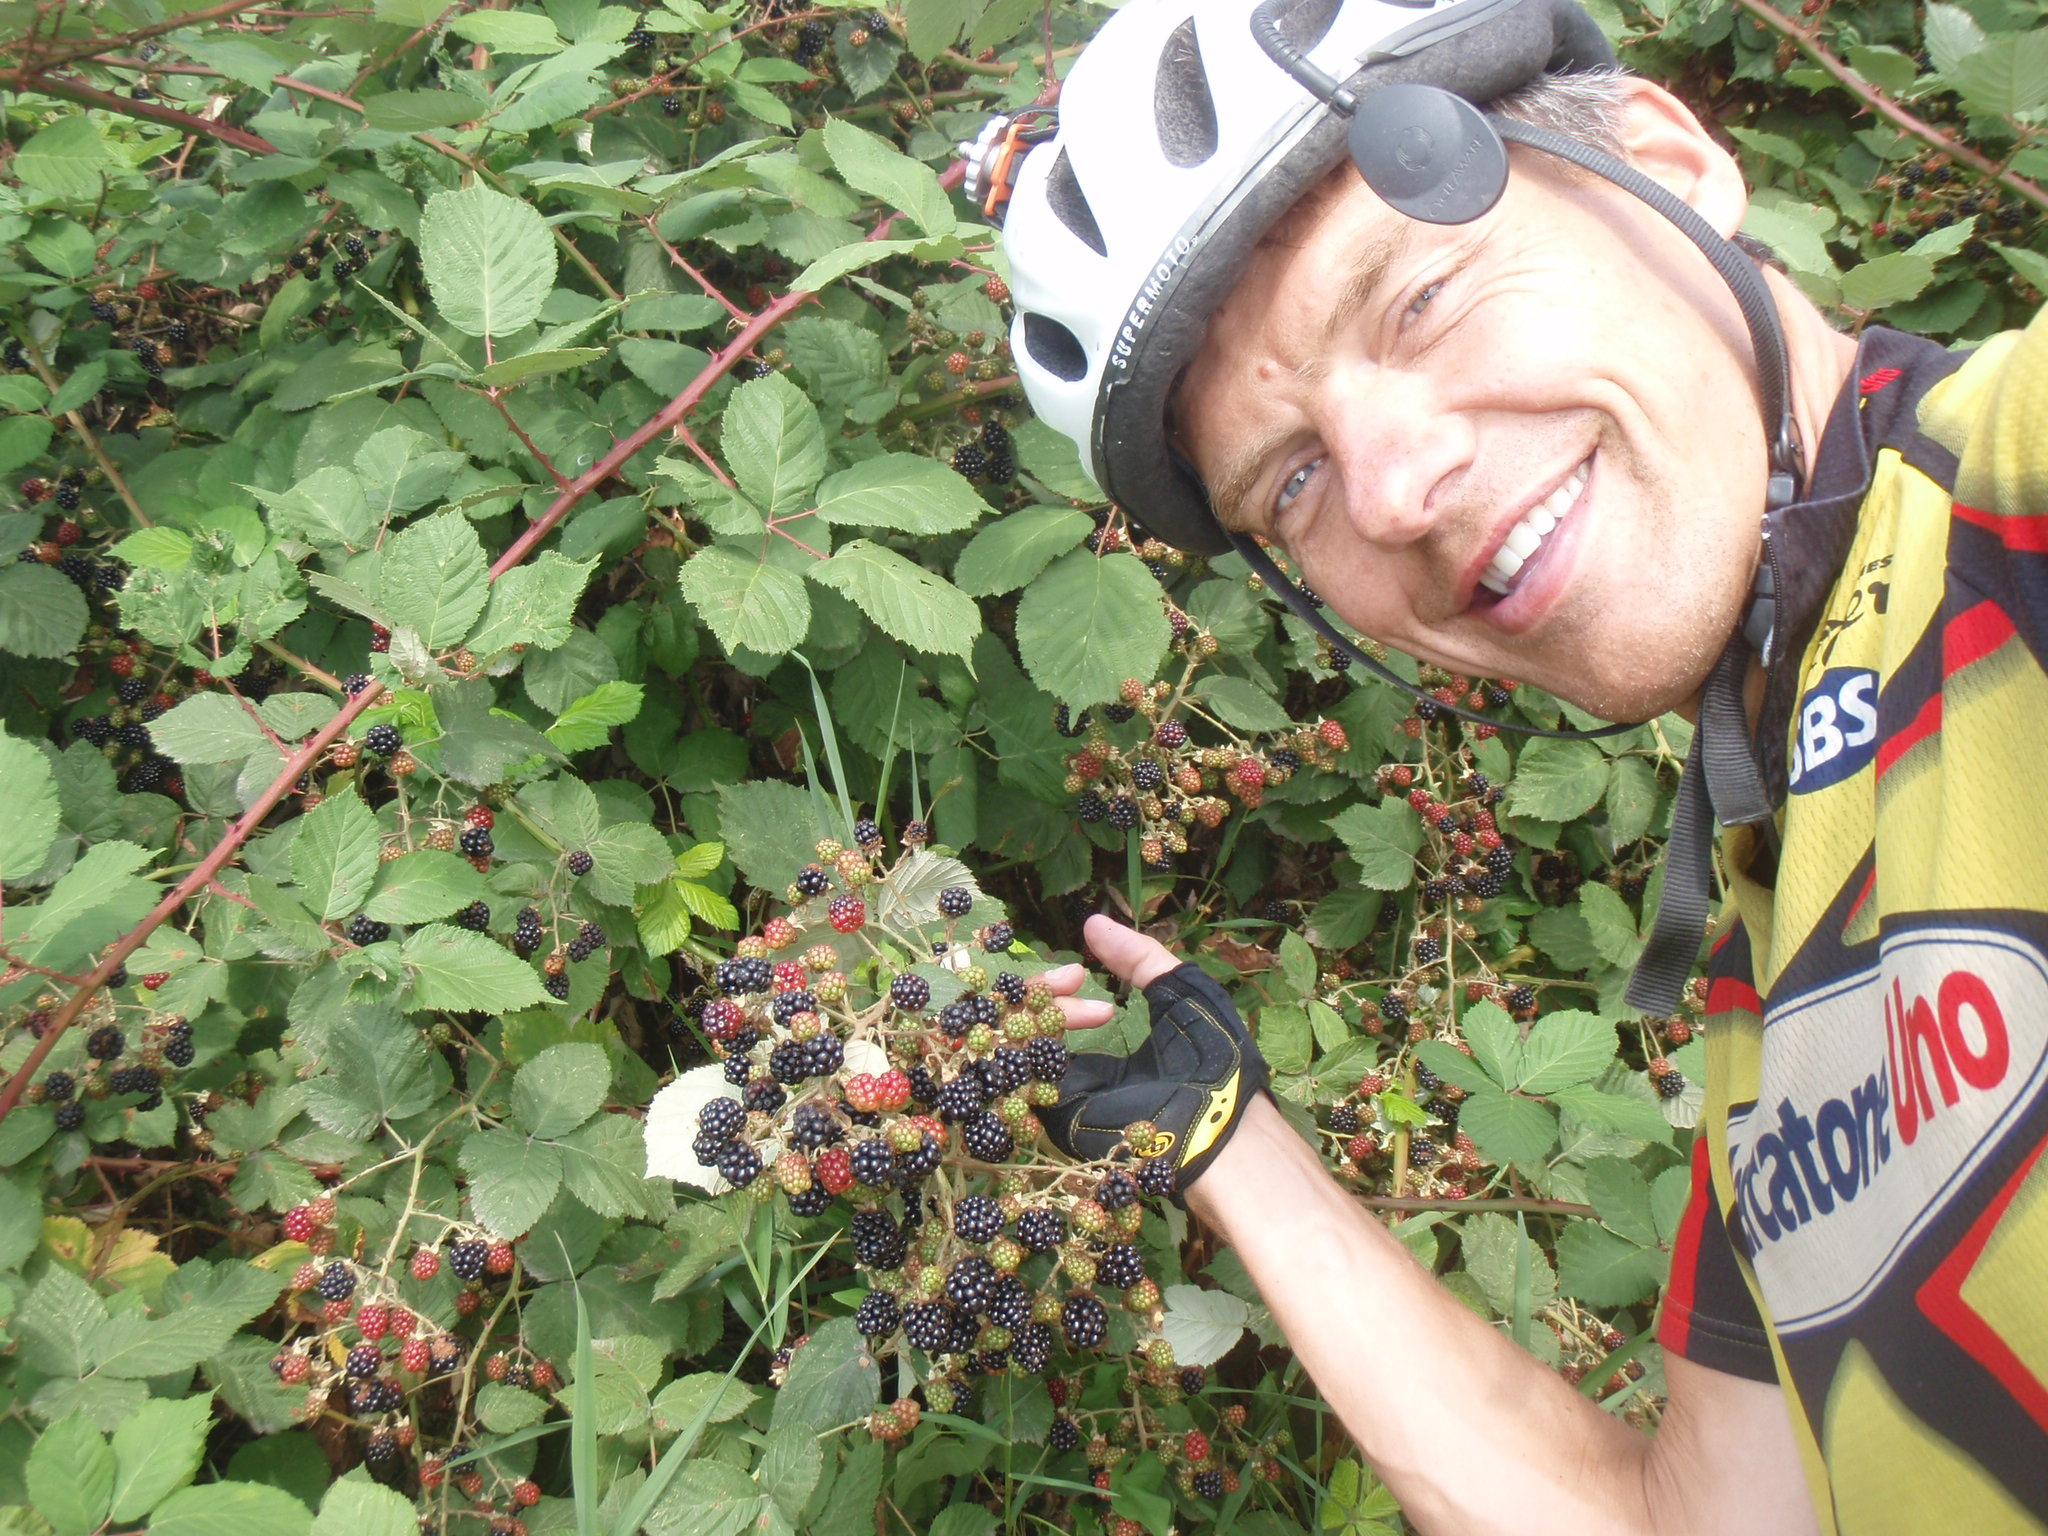 Sweet blackberries ripe for the picking along rural roads